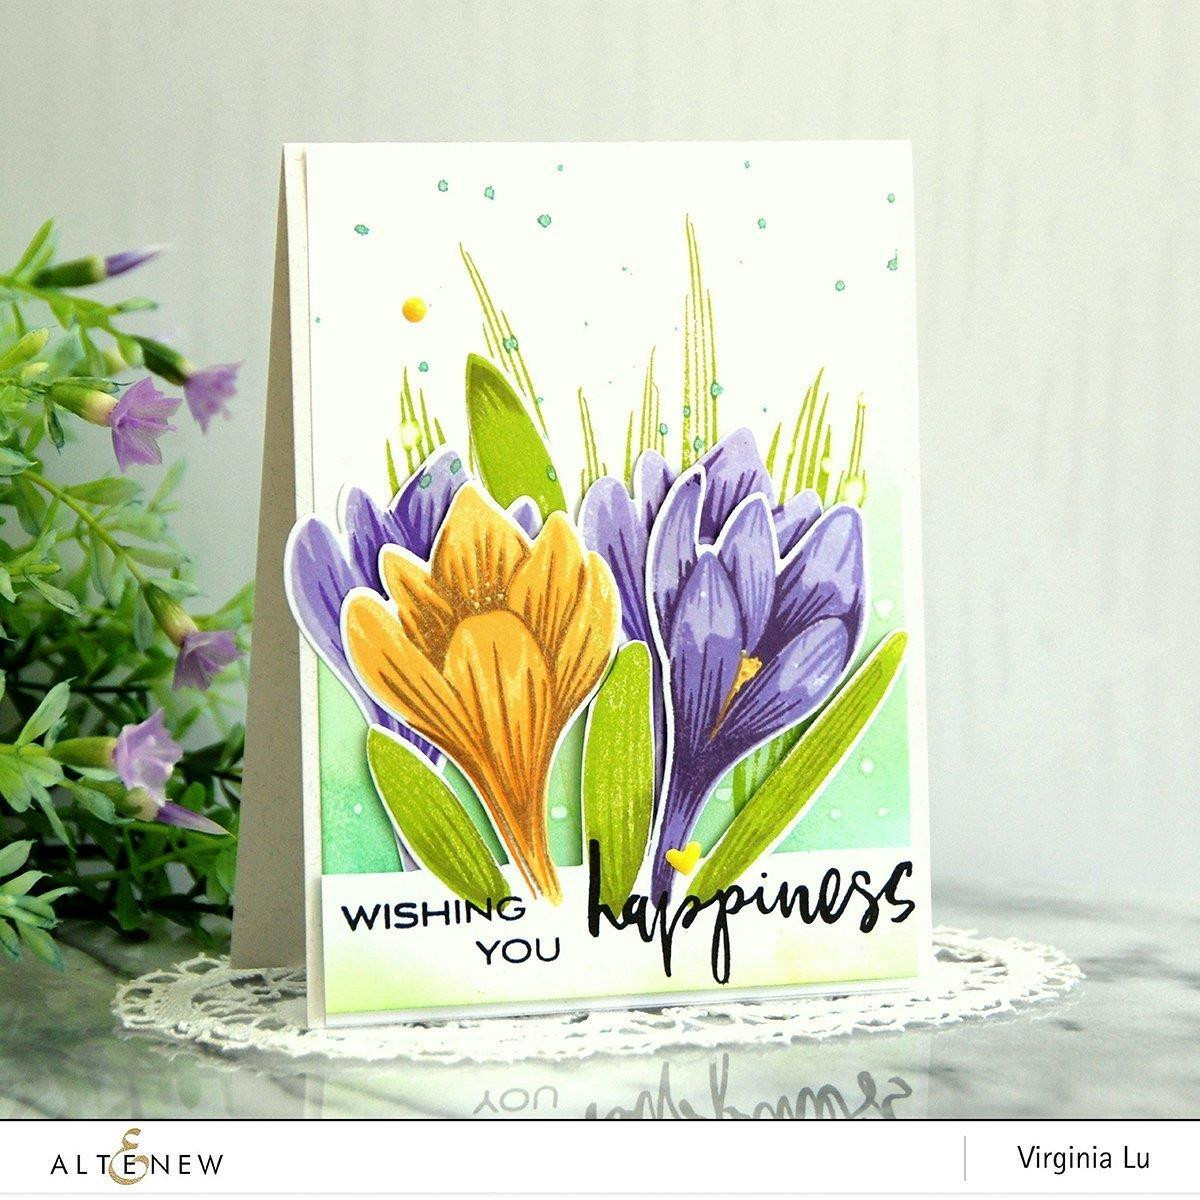 Build-A-Flower Crocus, Altenew Stamp and Die - 704831301533